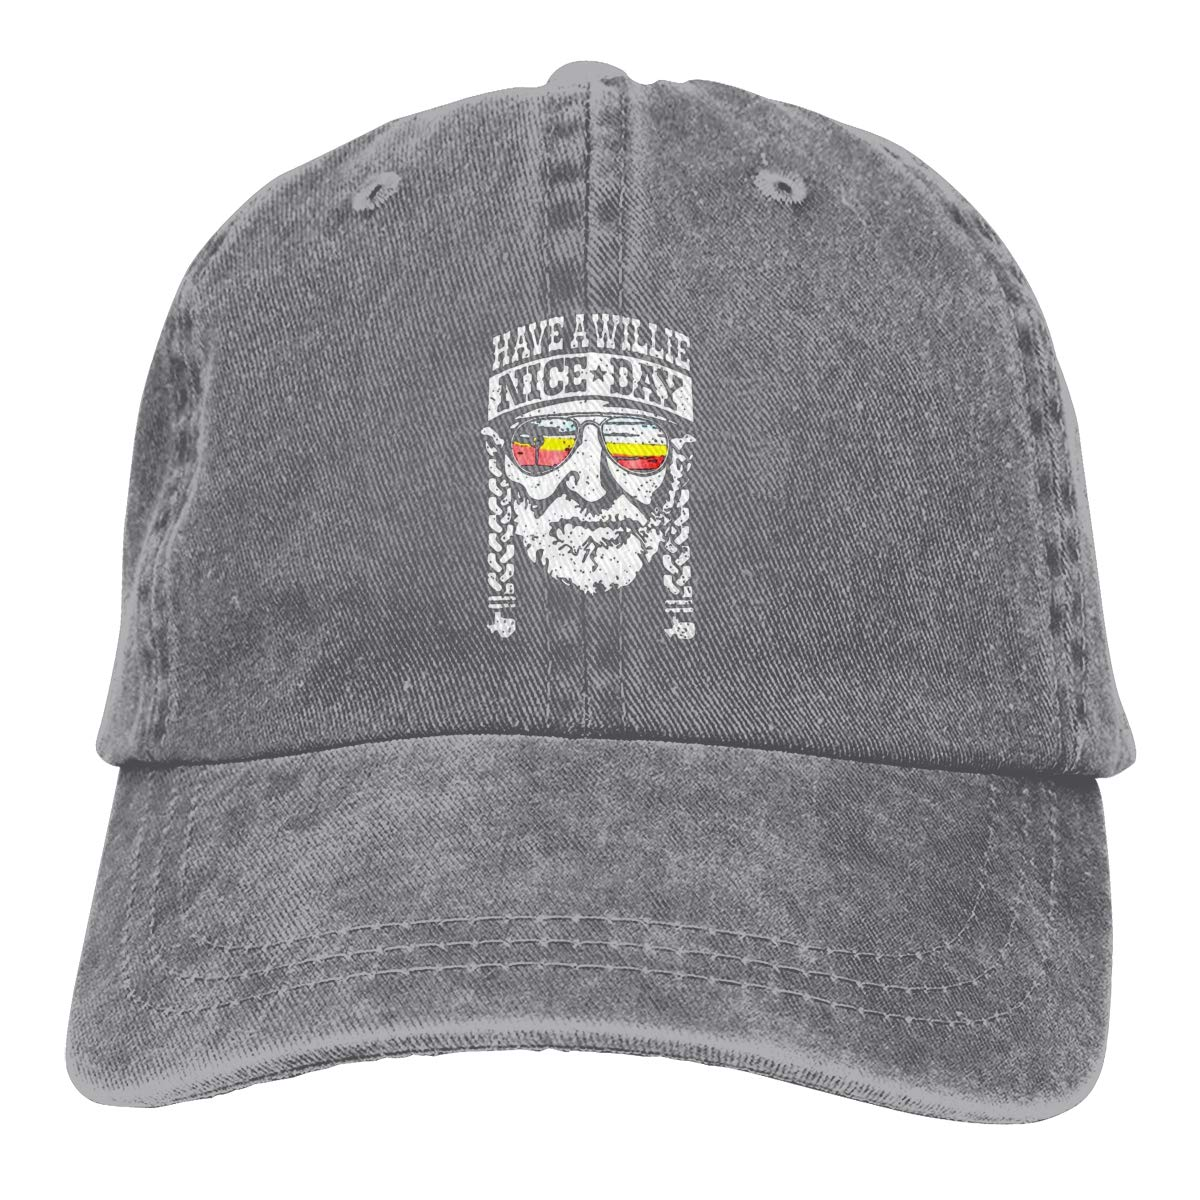 ORYISGAD Have-A-Willie-Nice-Day Sports Cap for Mens and Womens